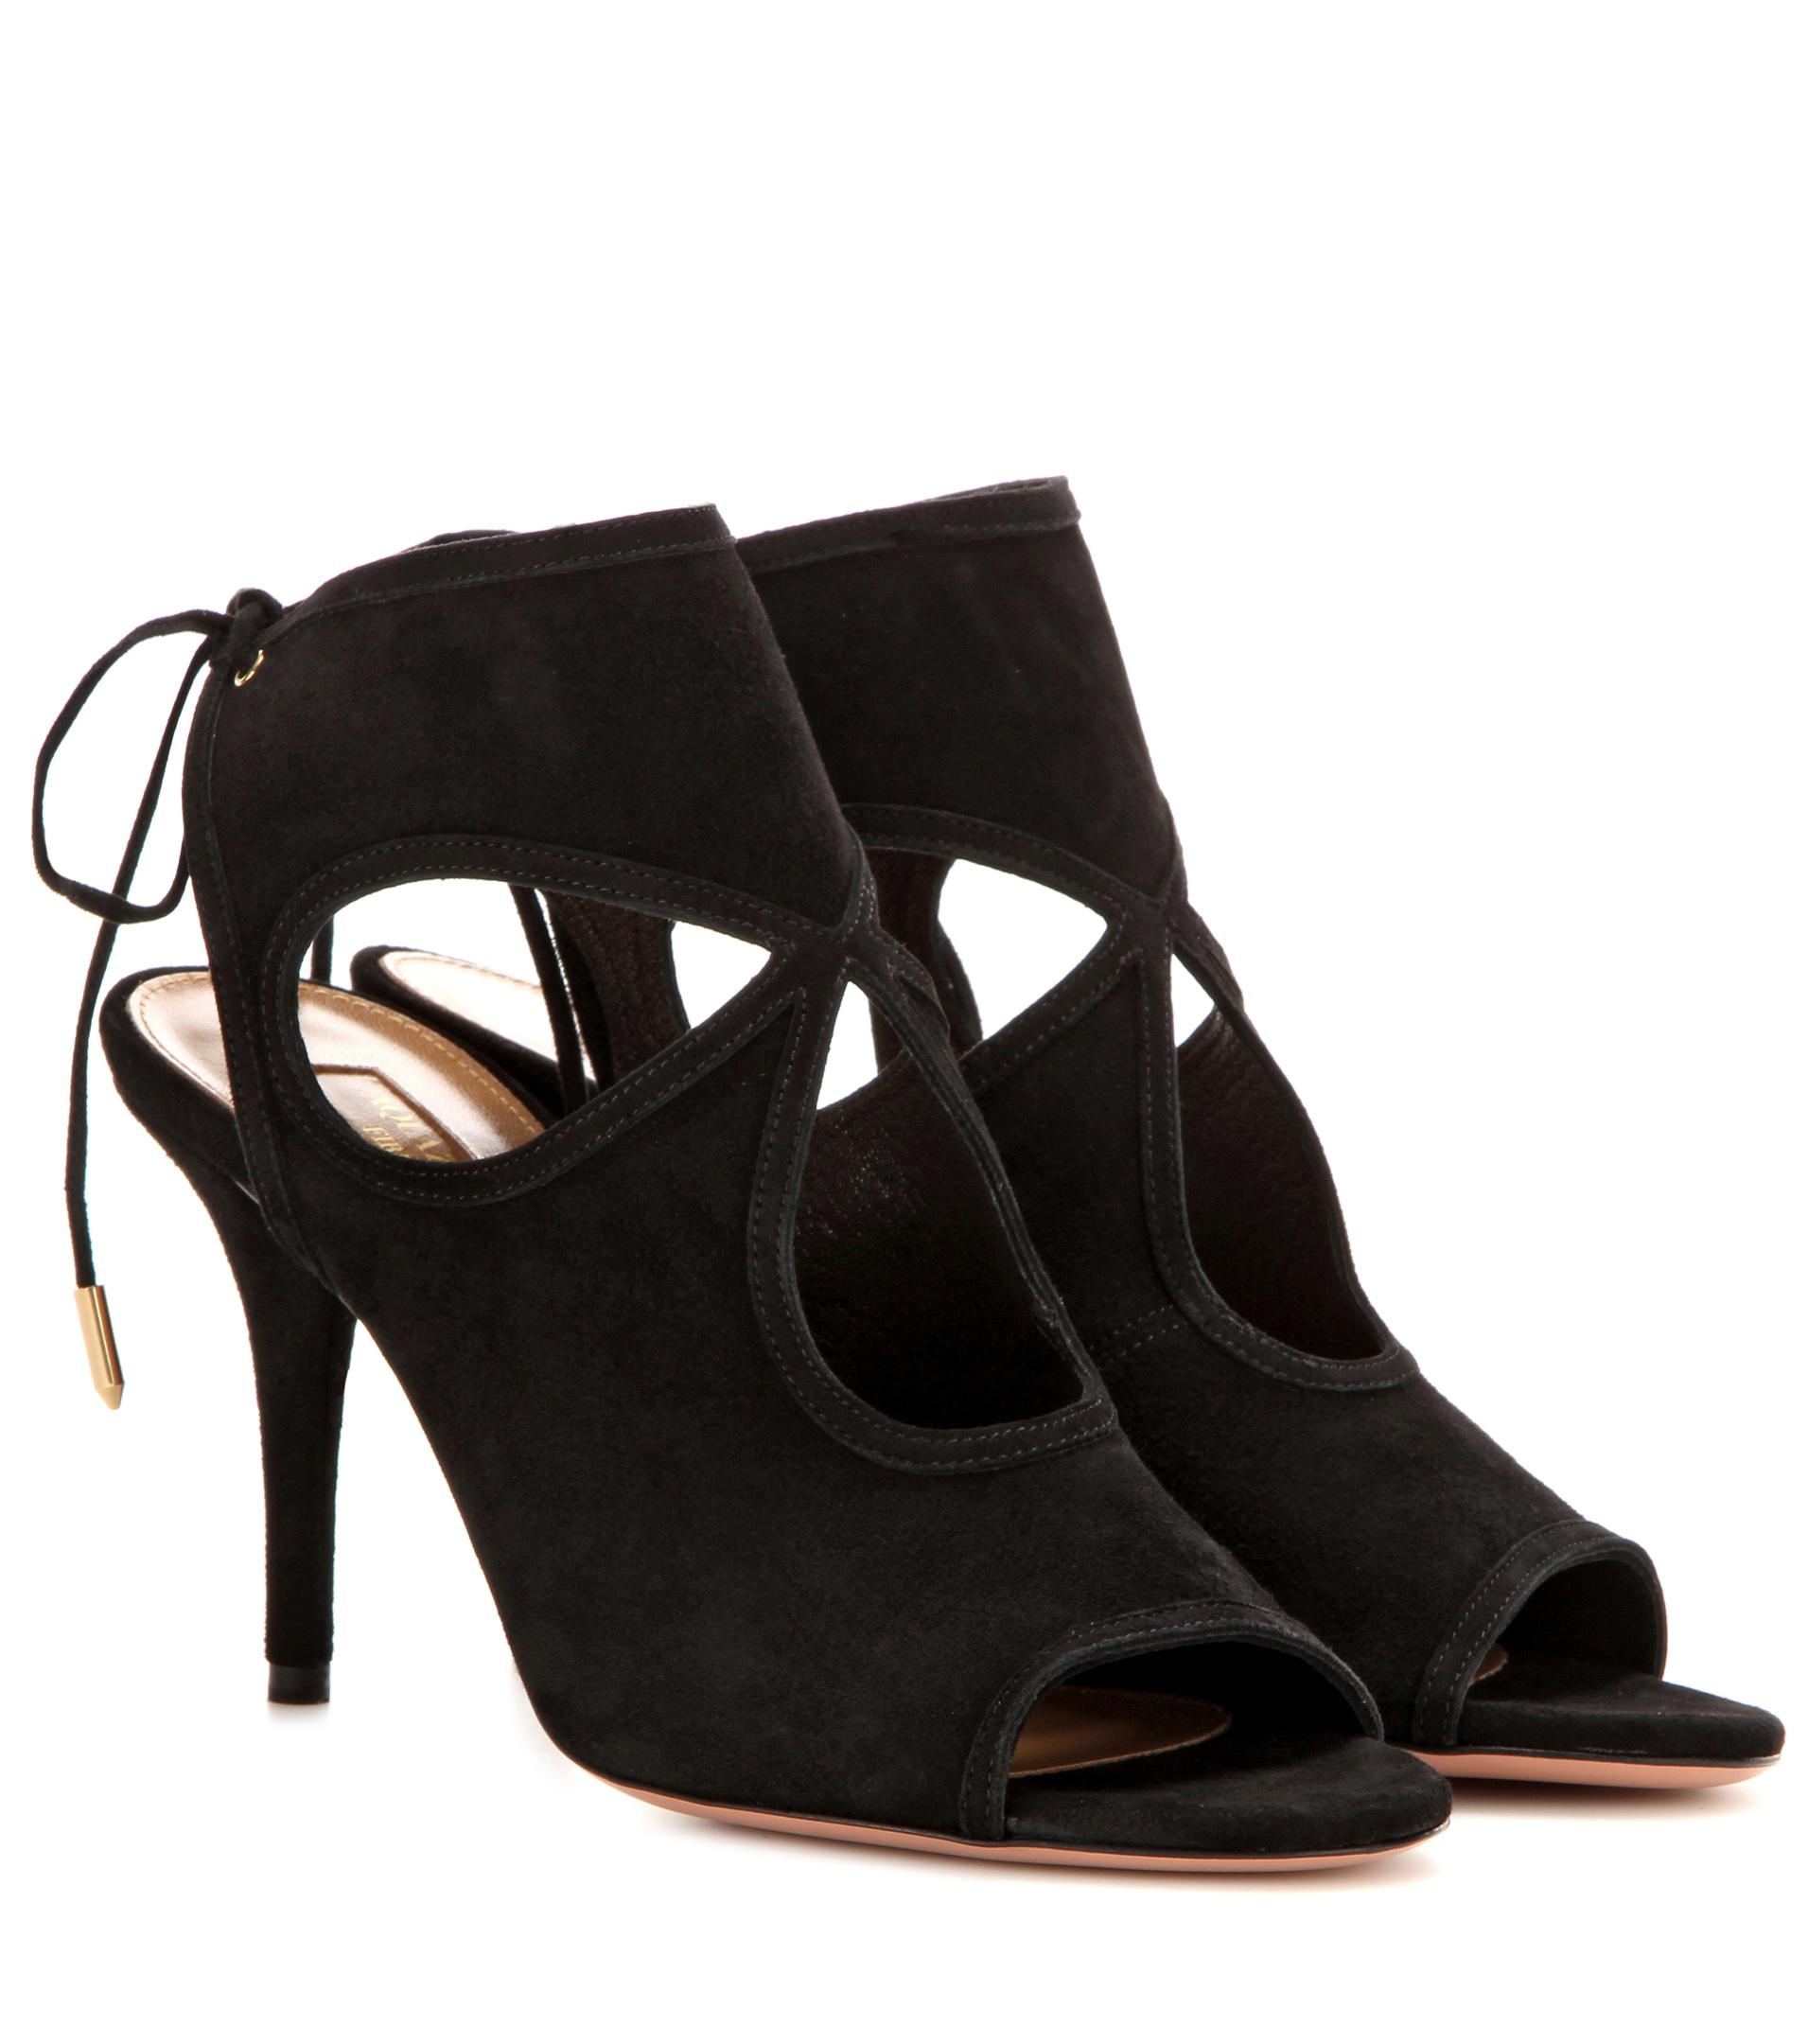 Aquazzura Suede Sexy Thing Sandals w/ Tags clearance extremely free shipping best prices free shipping clearance perfect sale online really cheap price VZwBNoEq